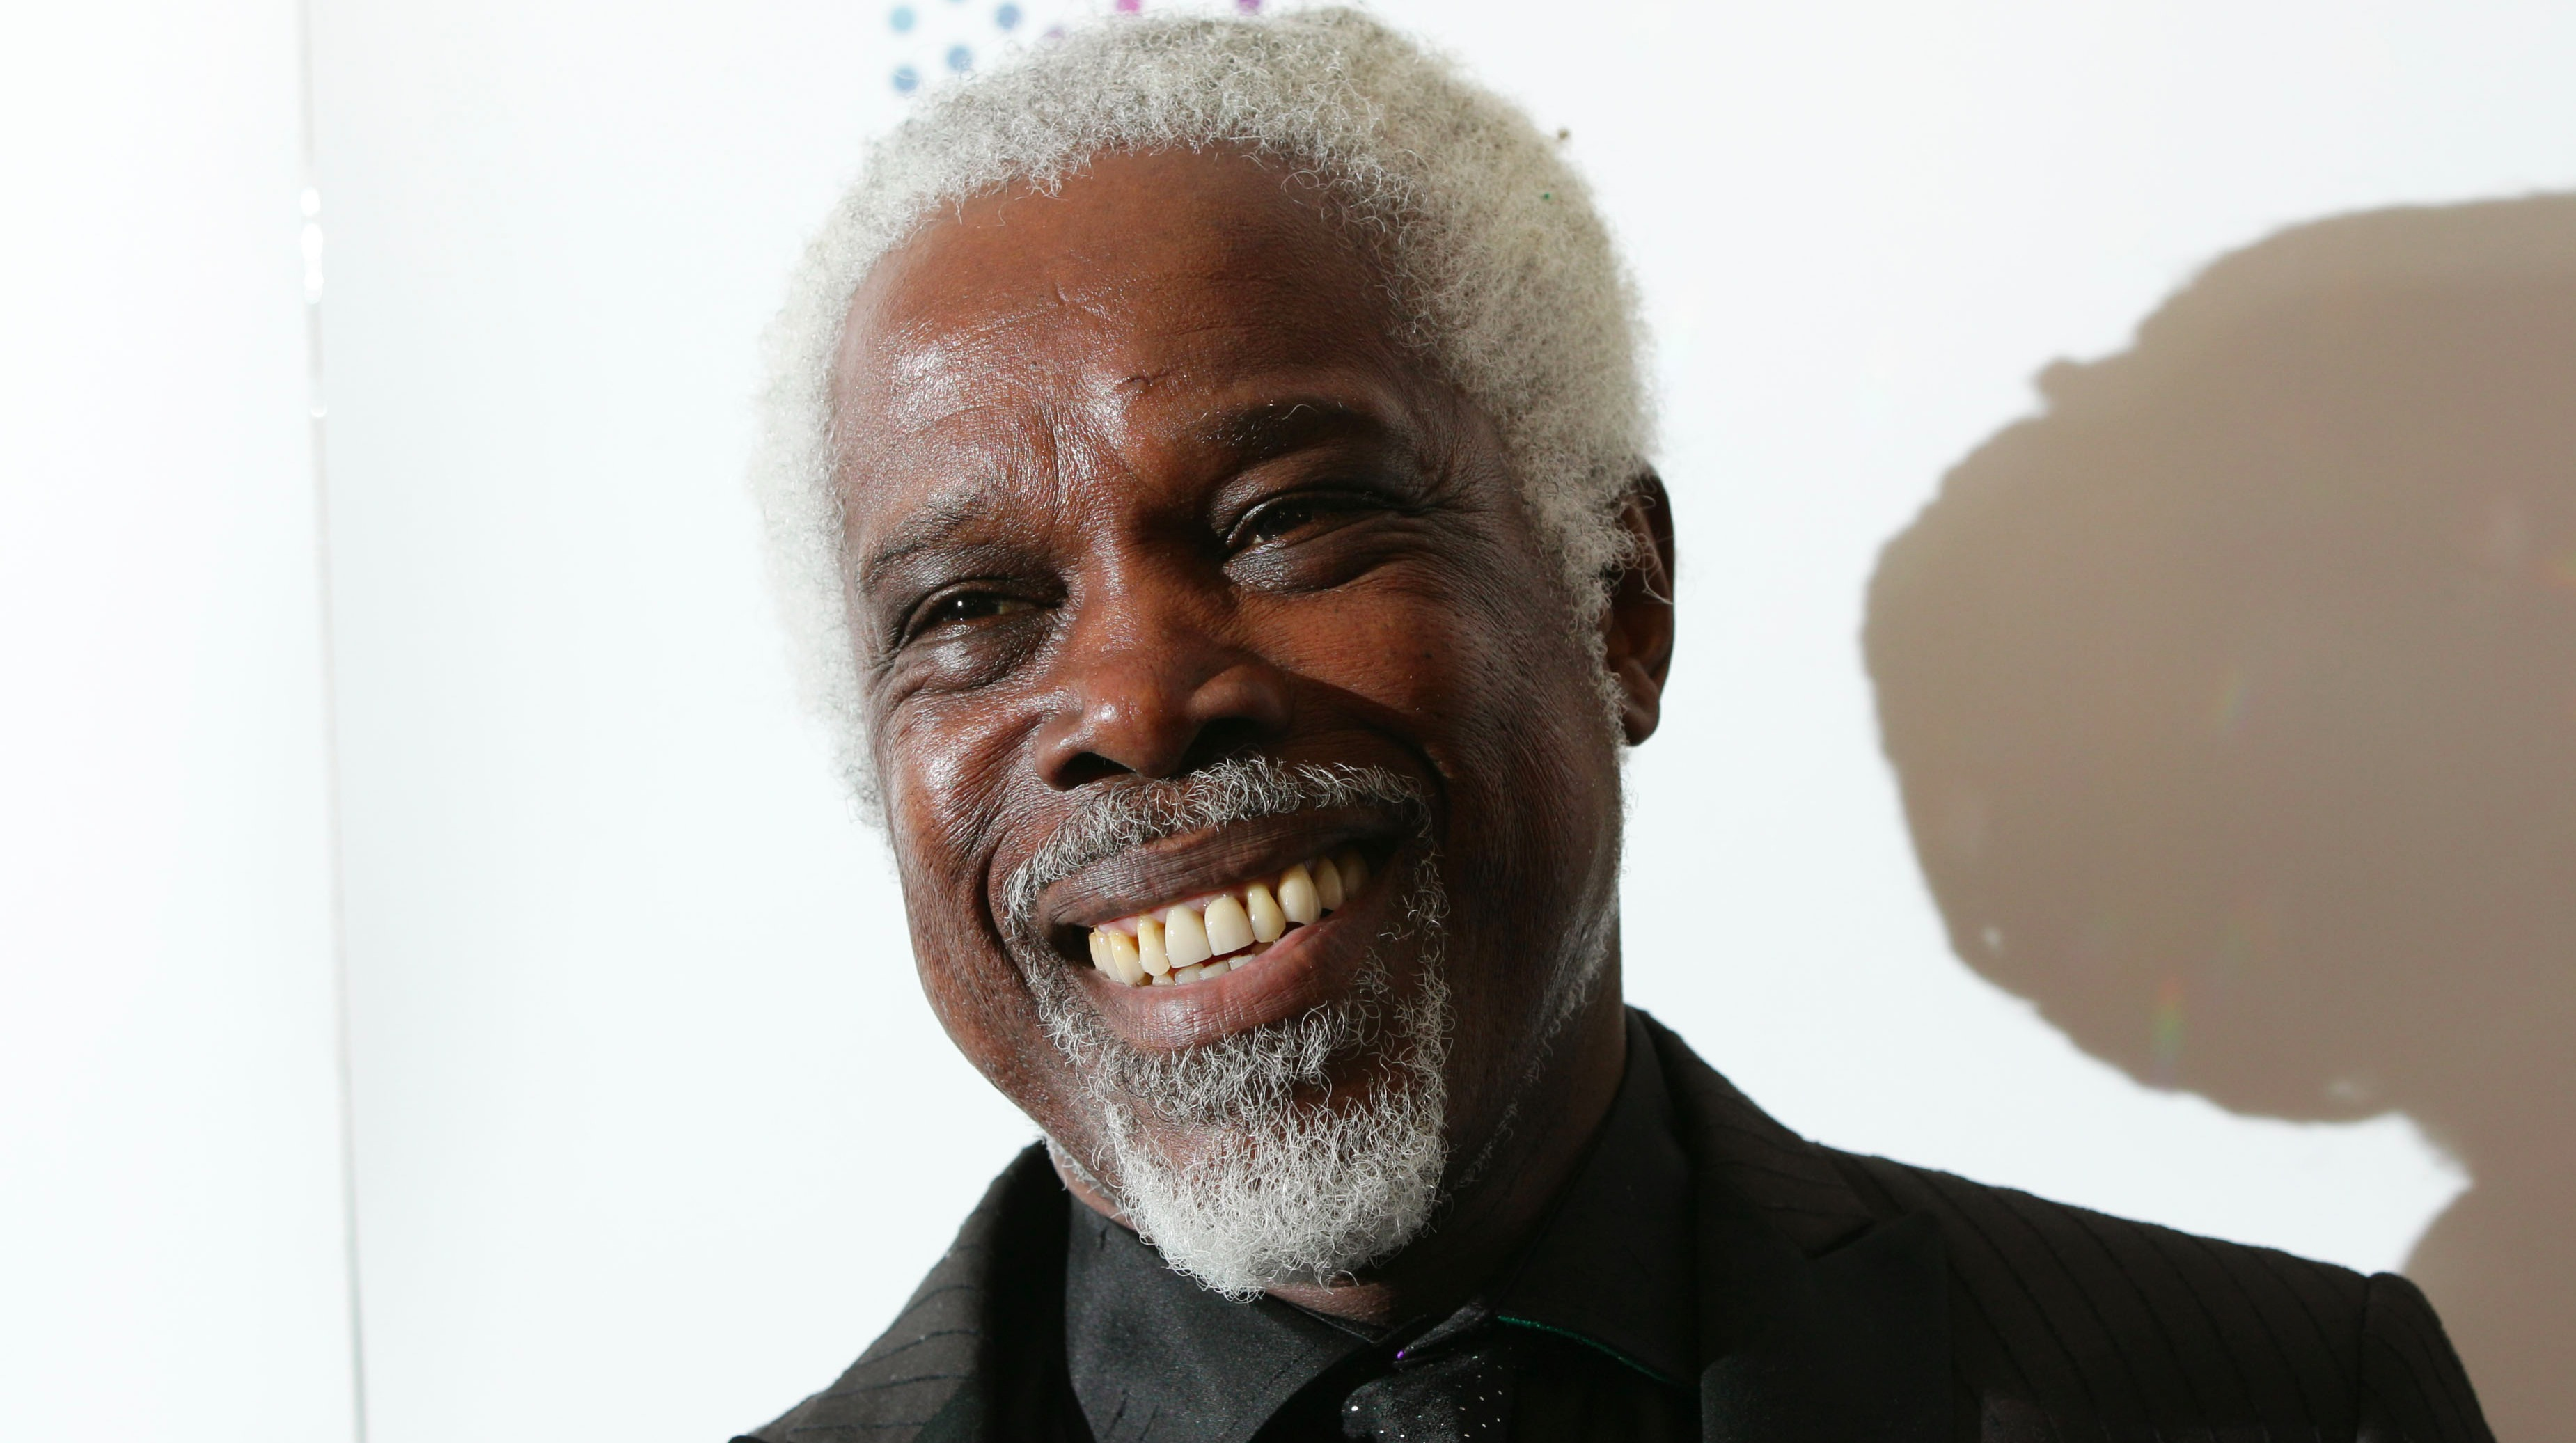 billy ocean - photo #10